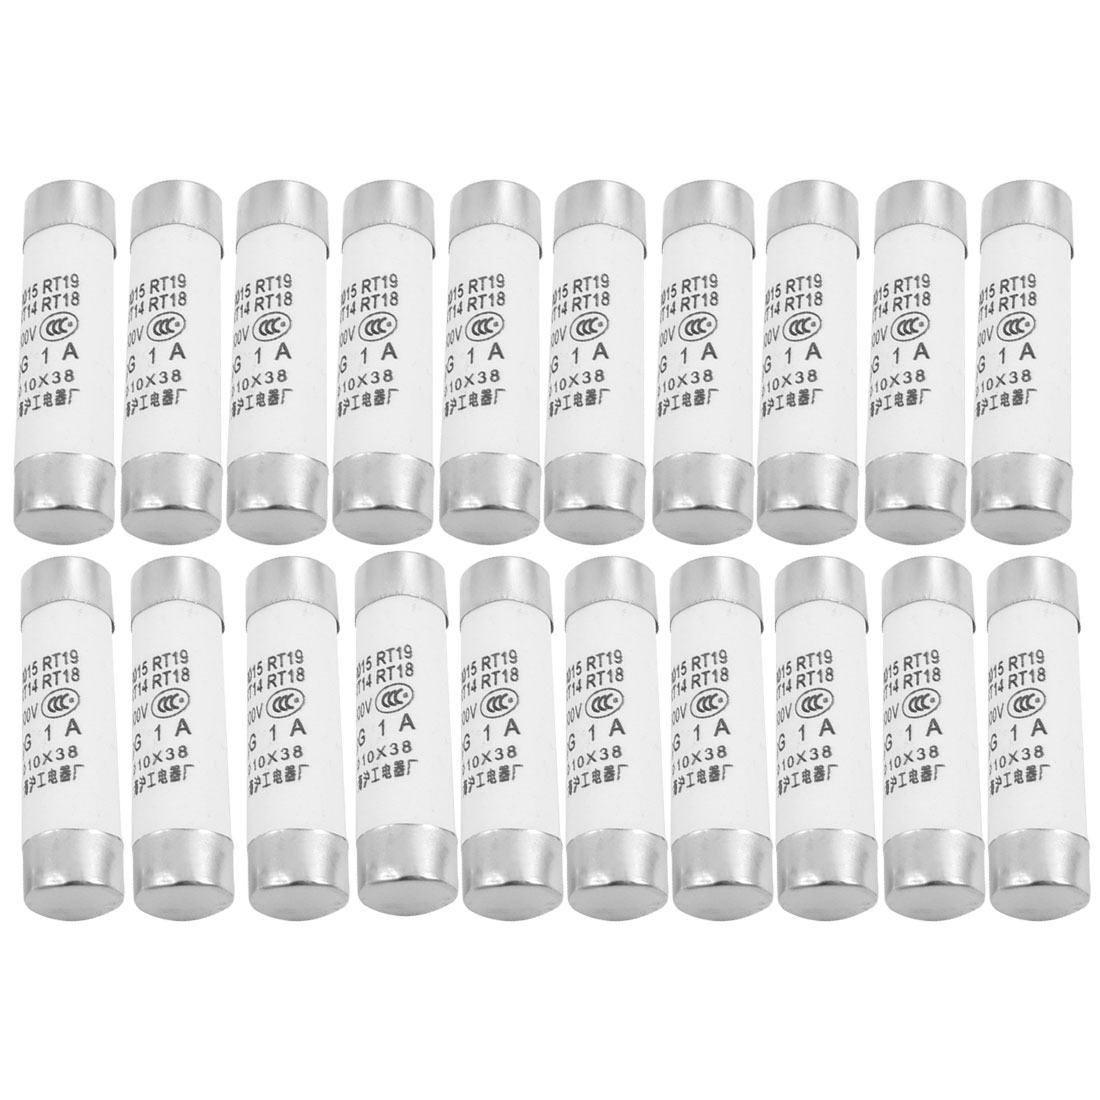 20 Pcs RO15 Series 500V 1A Cylinder Cap Ceramic Fast Blow Fuse Links 10x38mm